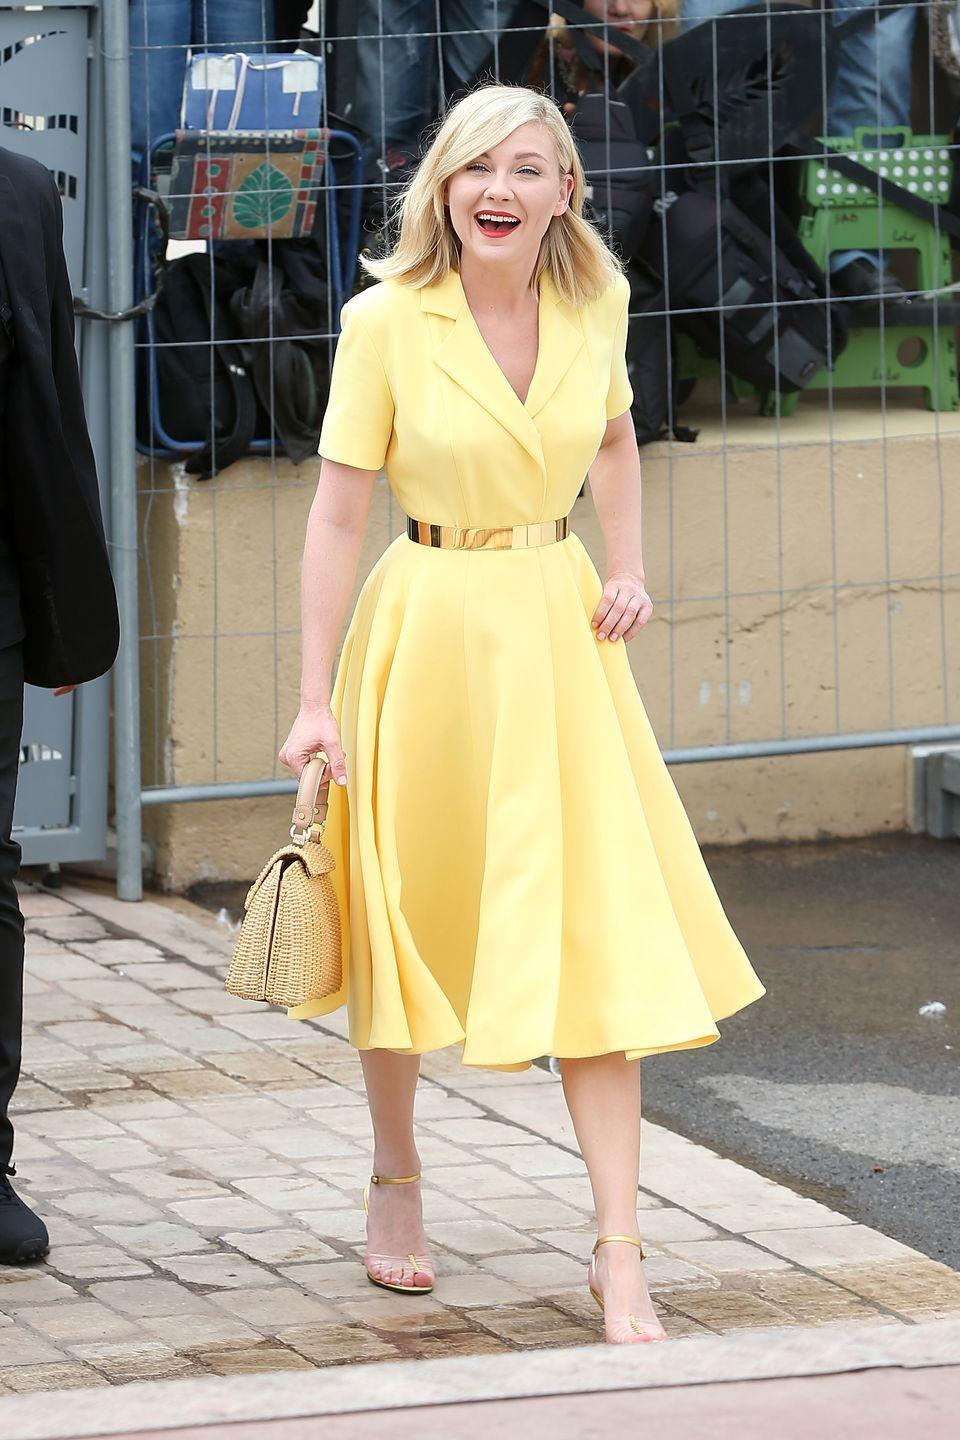 <p>Even though the casual yellow dress Kirsten Dunst wore to the Cannes Film Festival in 2016 is a little bit more '50s than the '20s attire Tiana wears in <em>The Princess and the Frog</em>, the whole look is strikingly similar.</p>